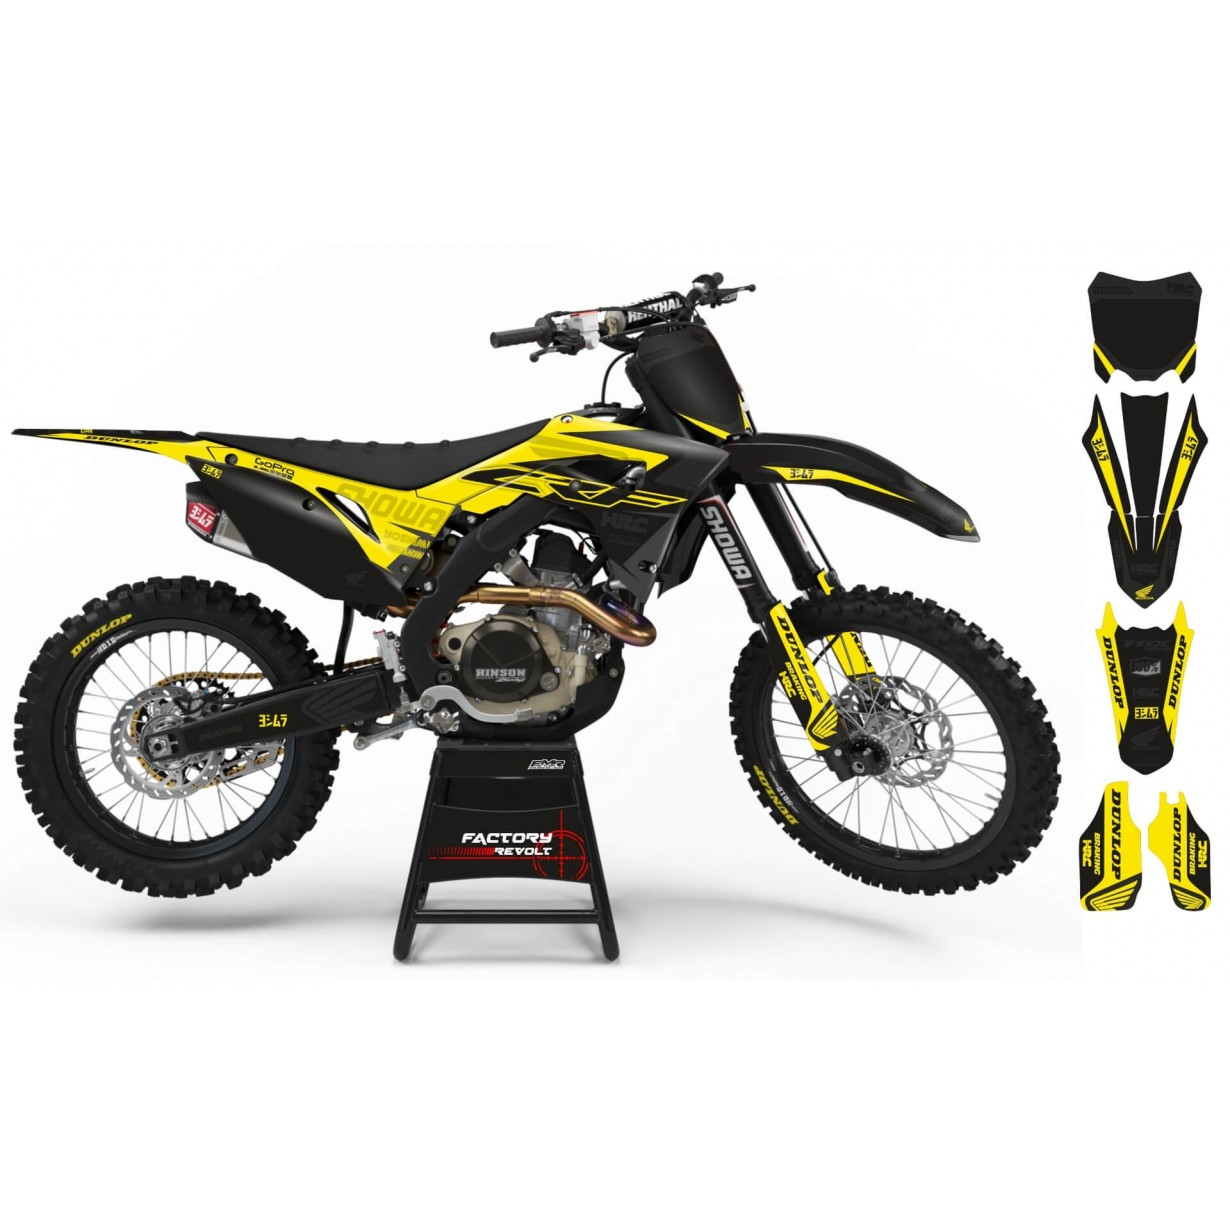 Kit déco Perso HONDA Factory Revolt A26A6 black/yellow